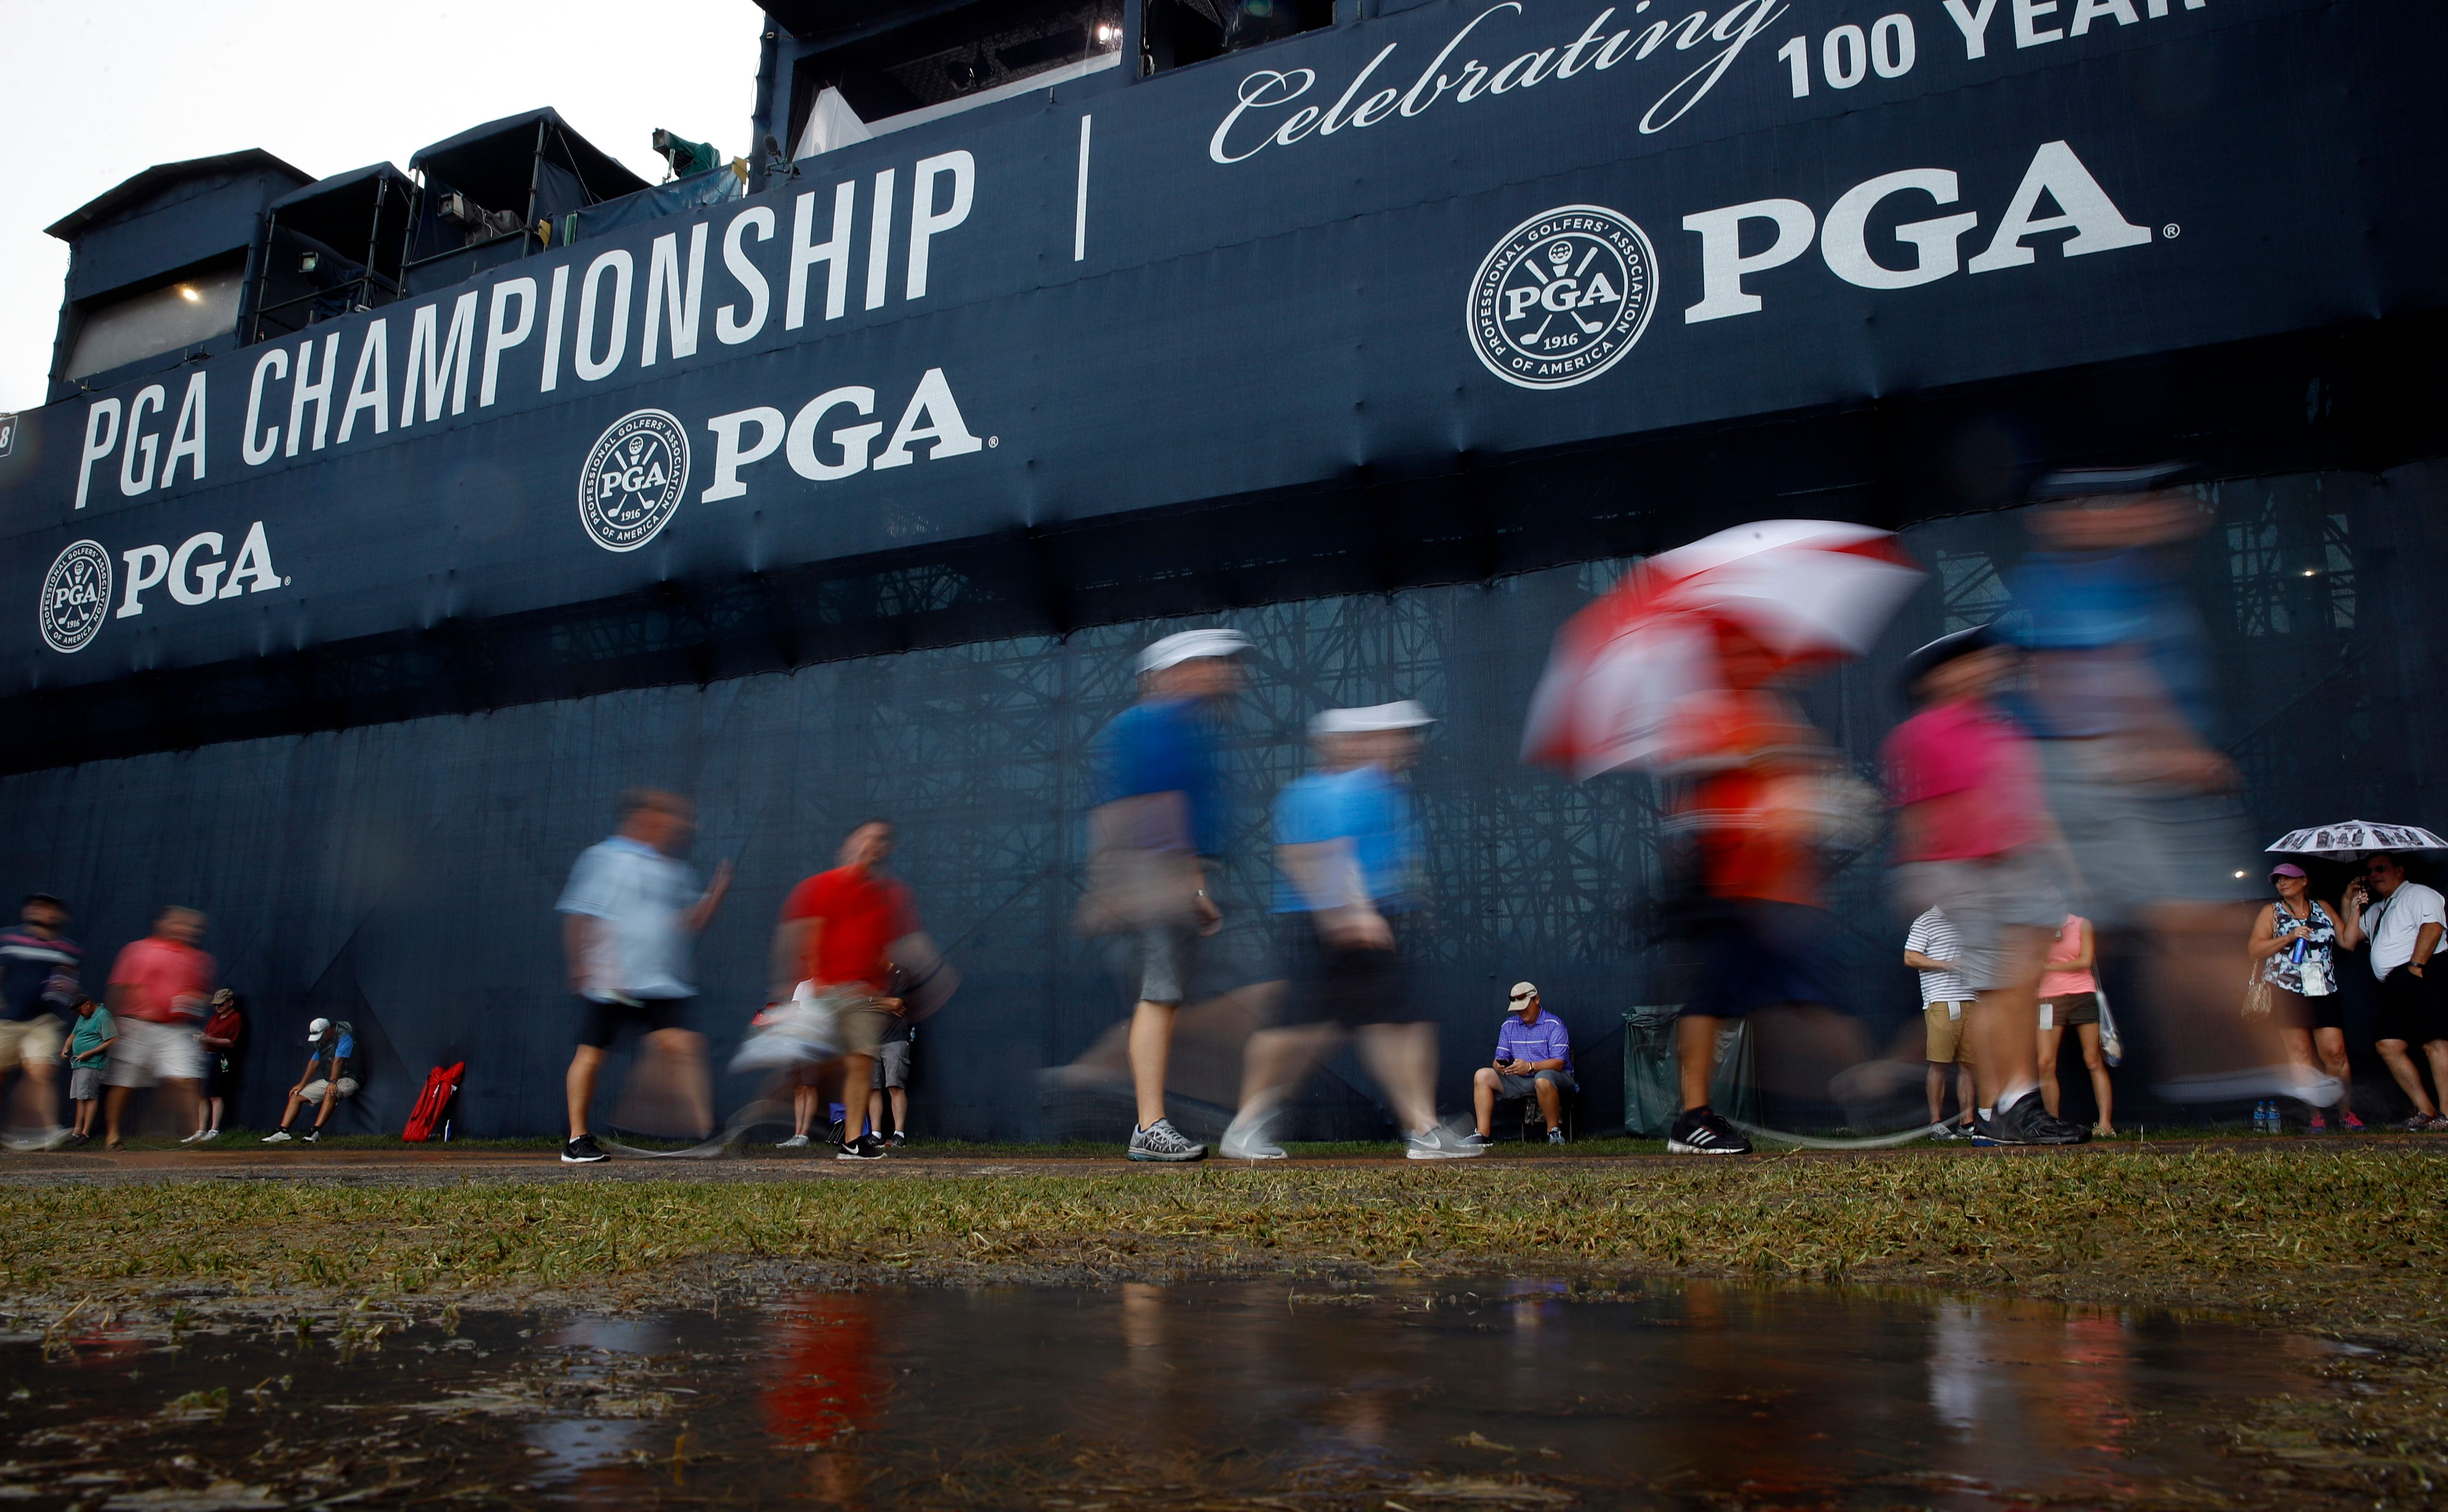 PGA Championship resumes with second round at wet Bellerive